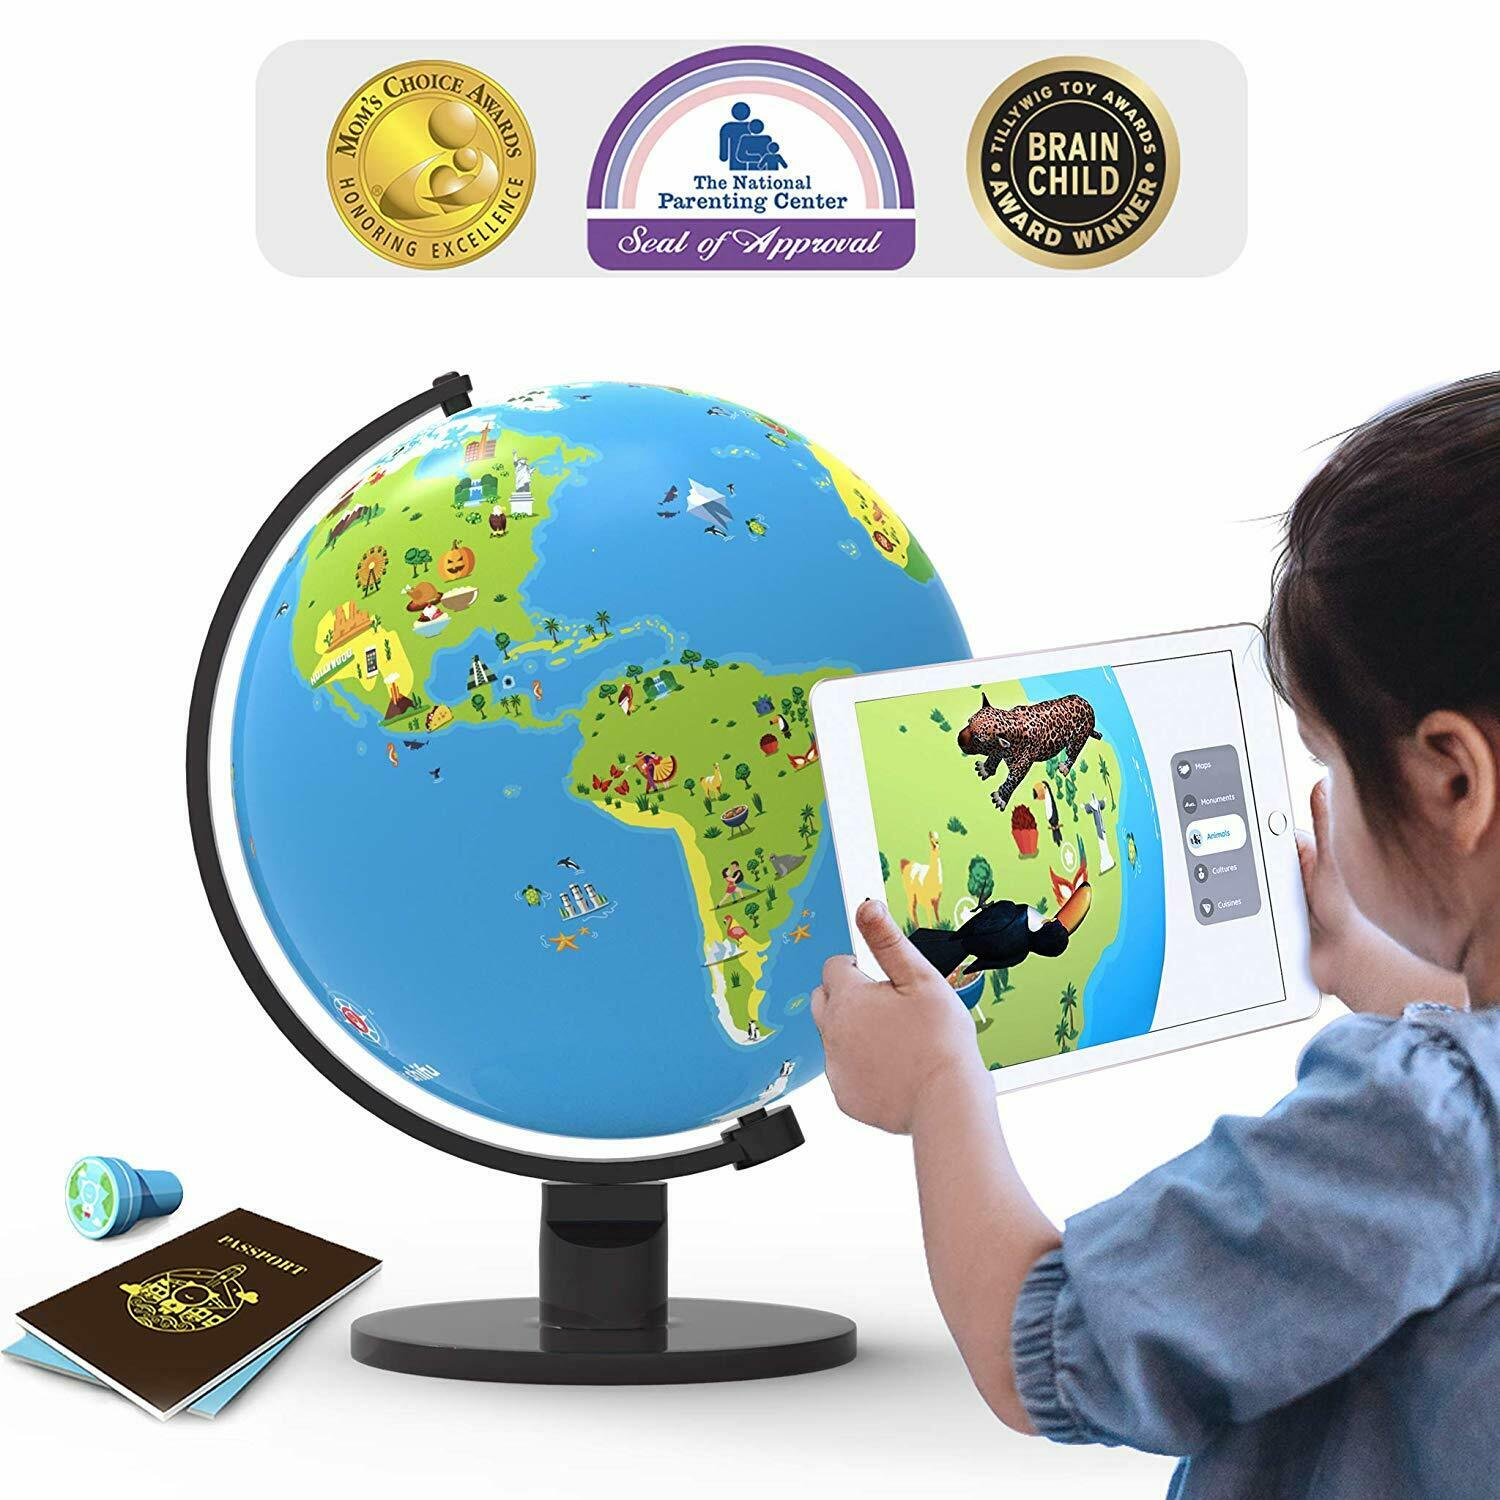 Augmented Reality Interactive Globe for Kids, STEM- (App Based) Educational Toy